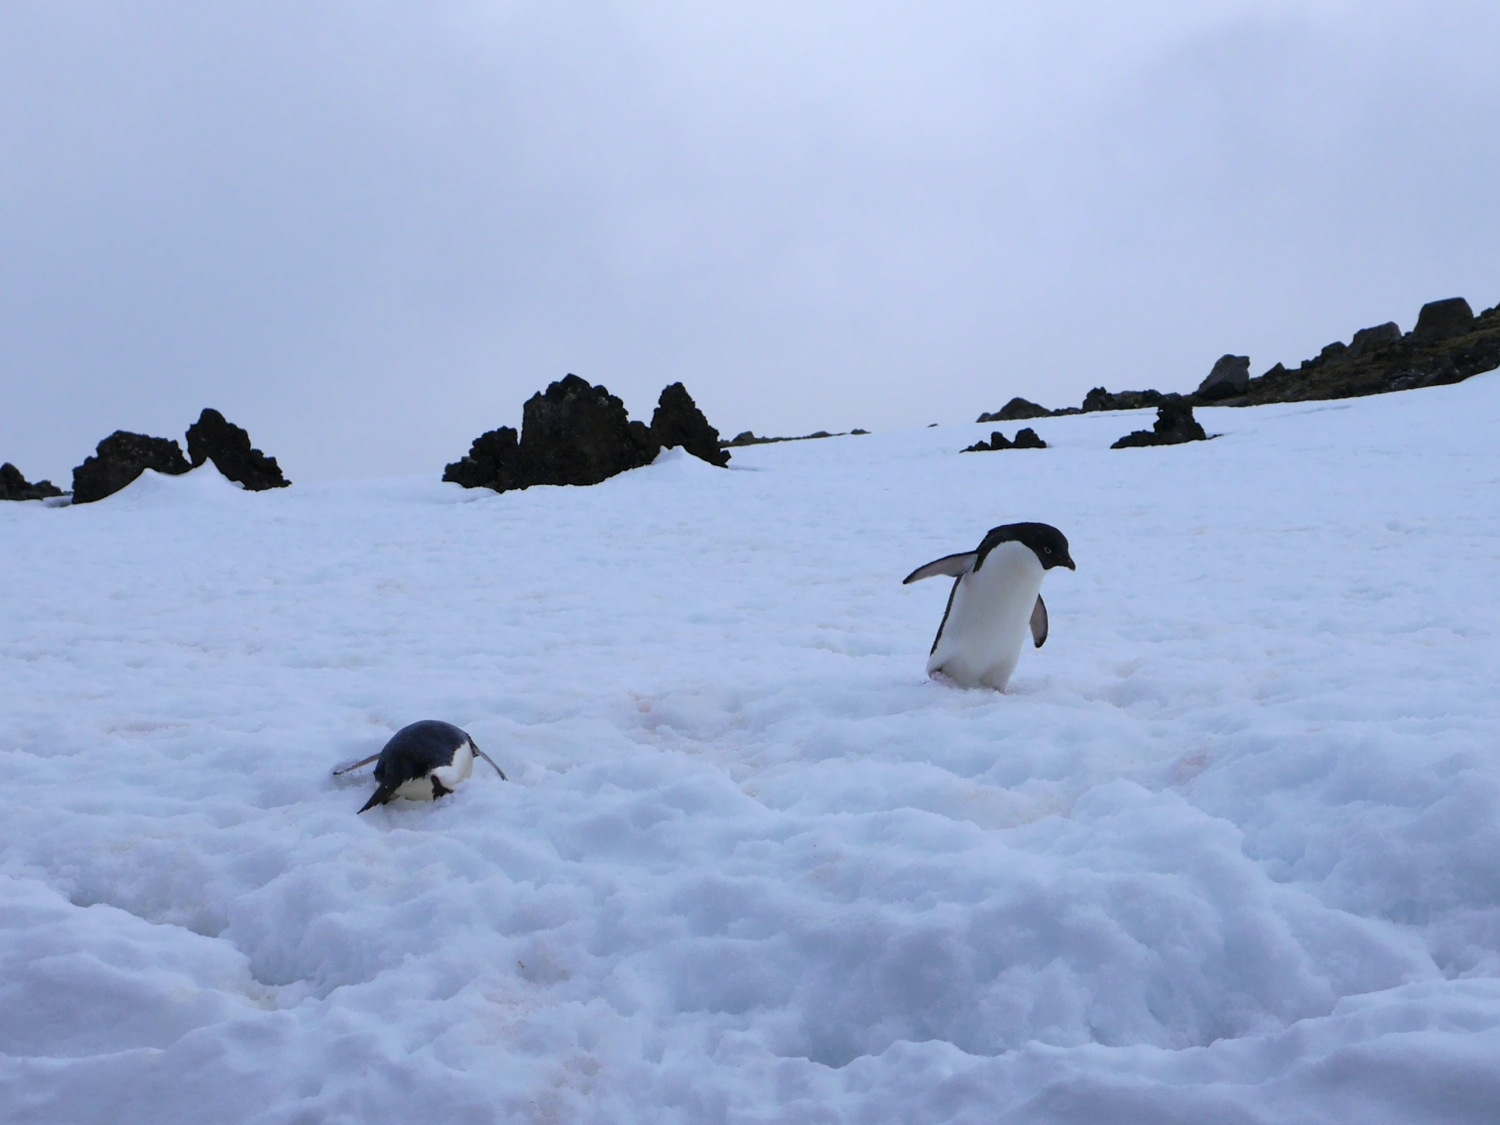 Adelie Penguins playing in the snow, Penguin Island. Photo: Chris Rowan, 2013.